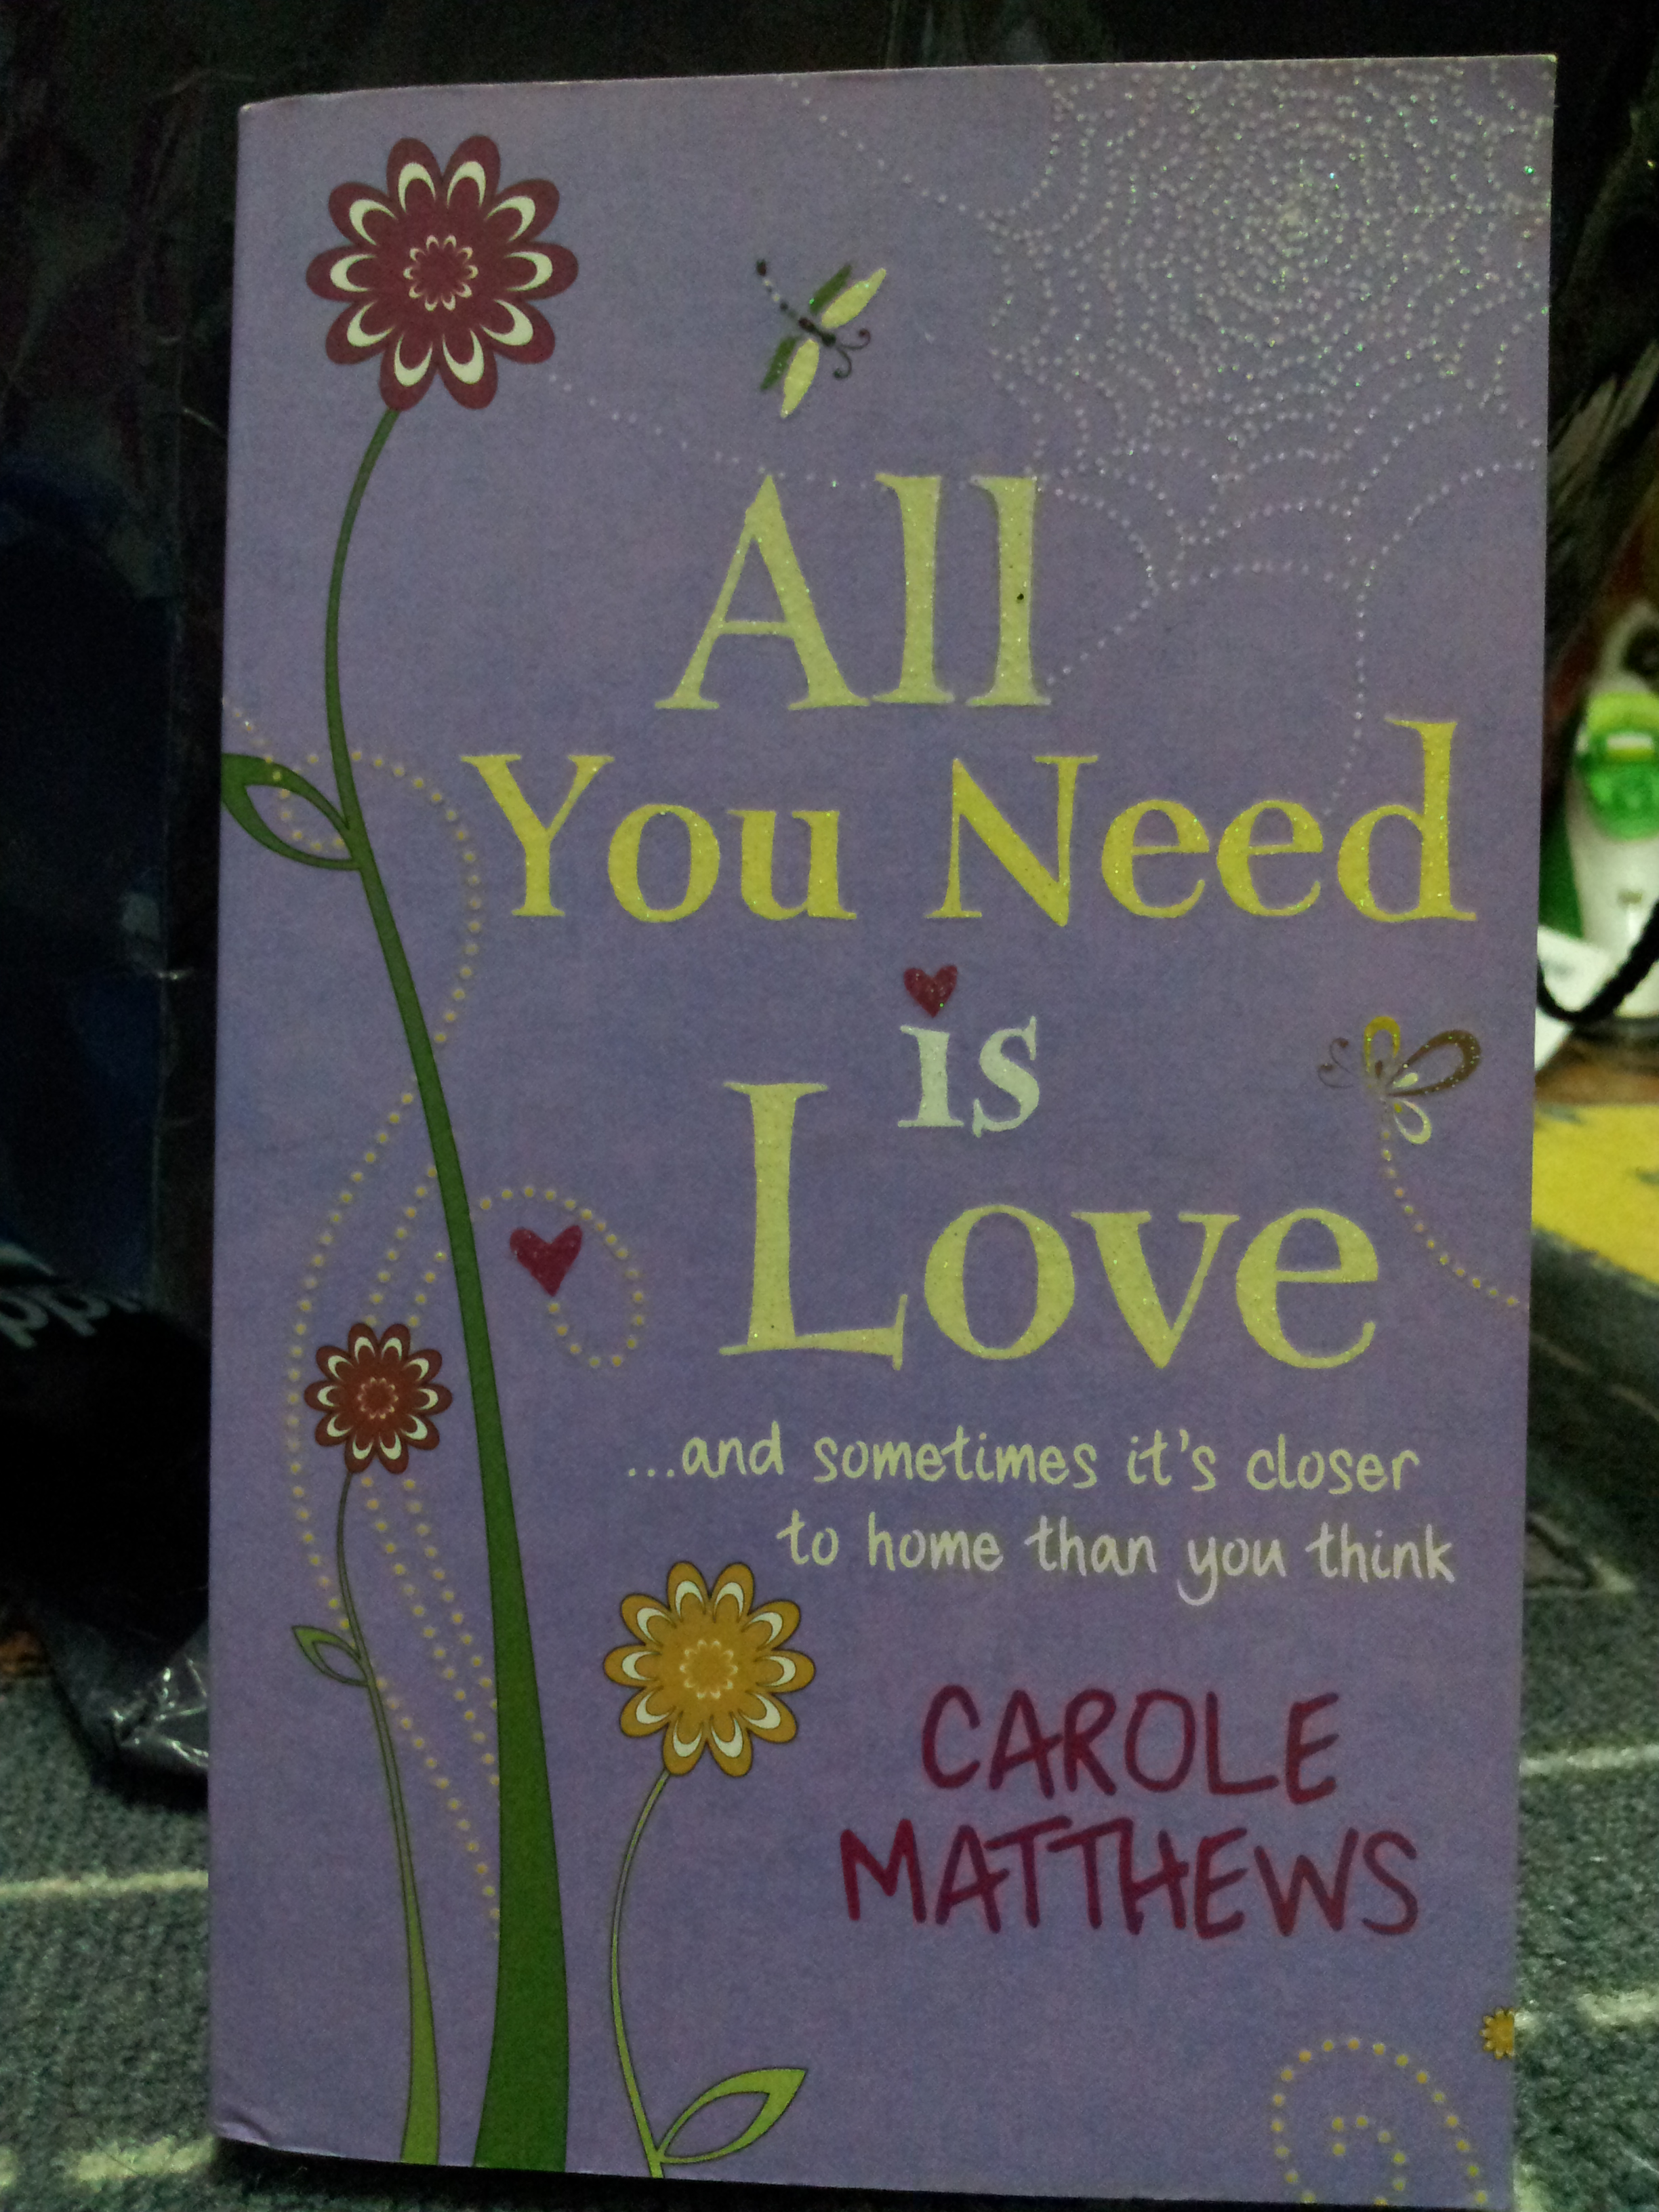 FOR SALE: All You Need Is Love by Carole Matthews